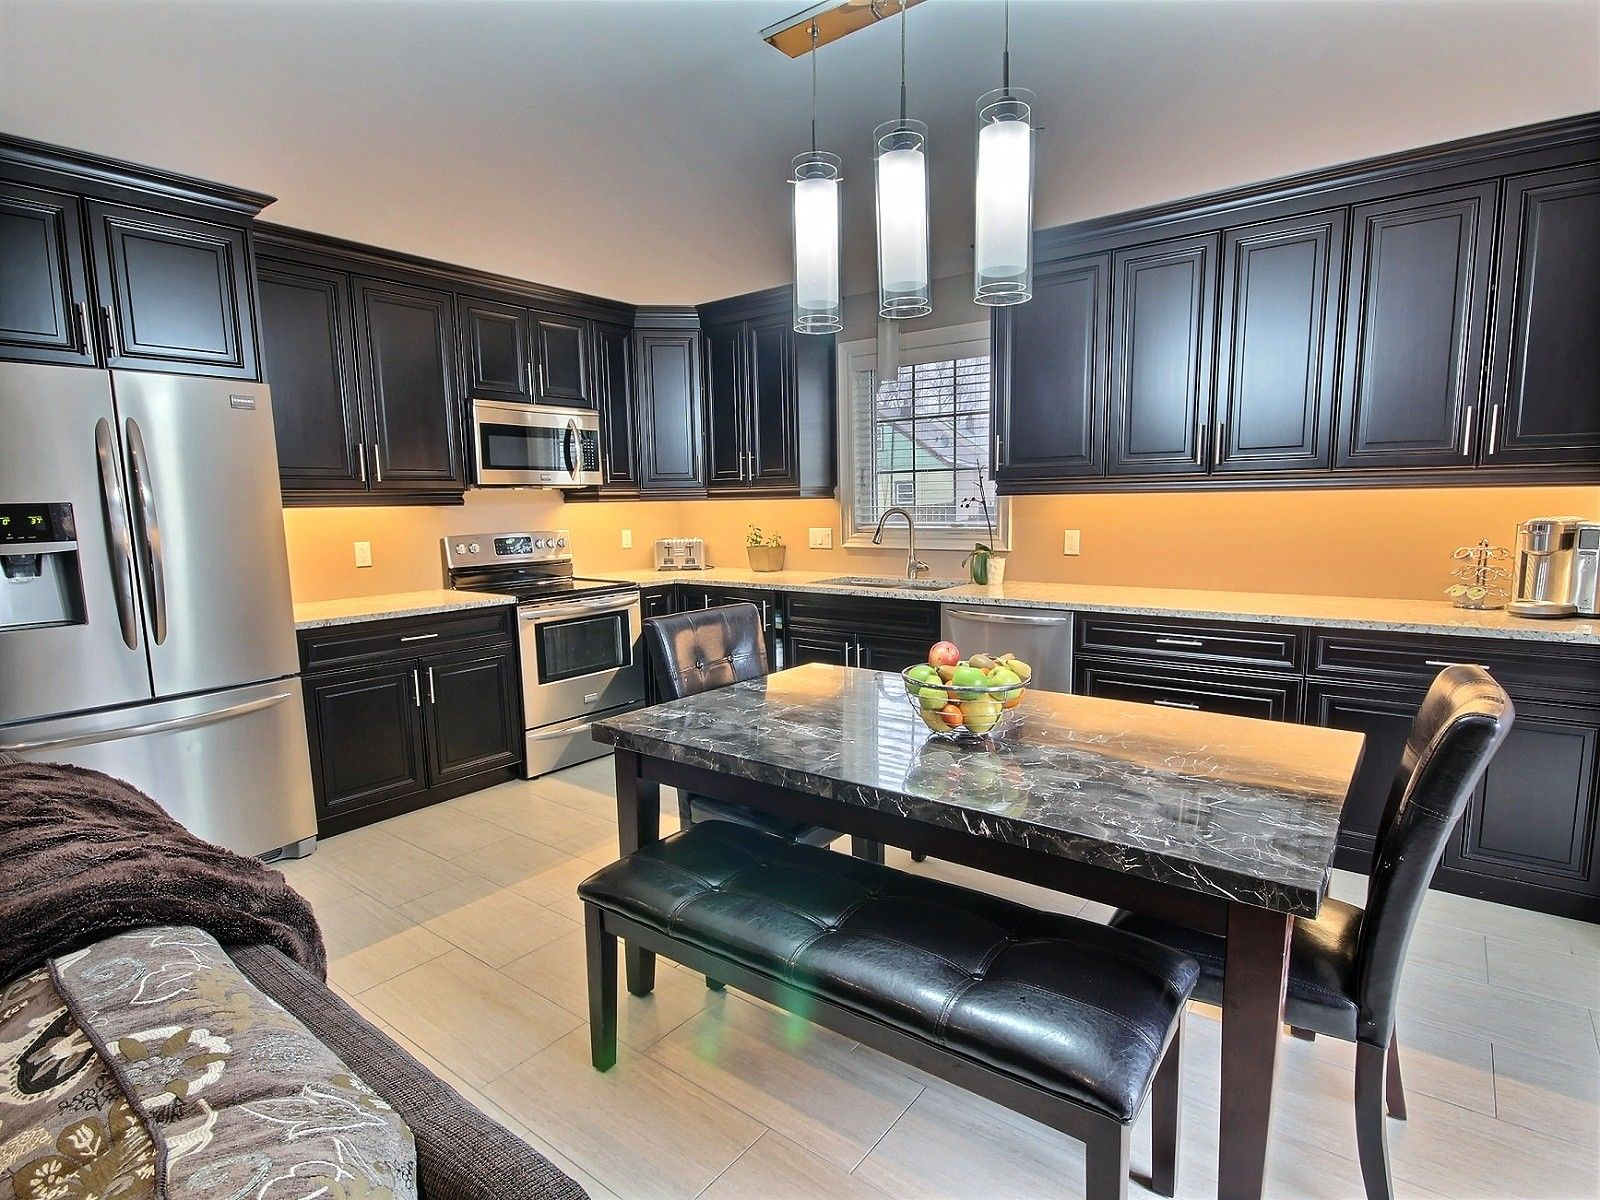 St catharines for sale comfree for Cabinex kitchen designs st catharines